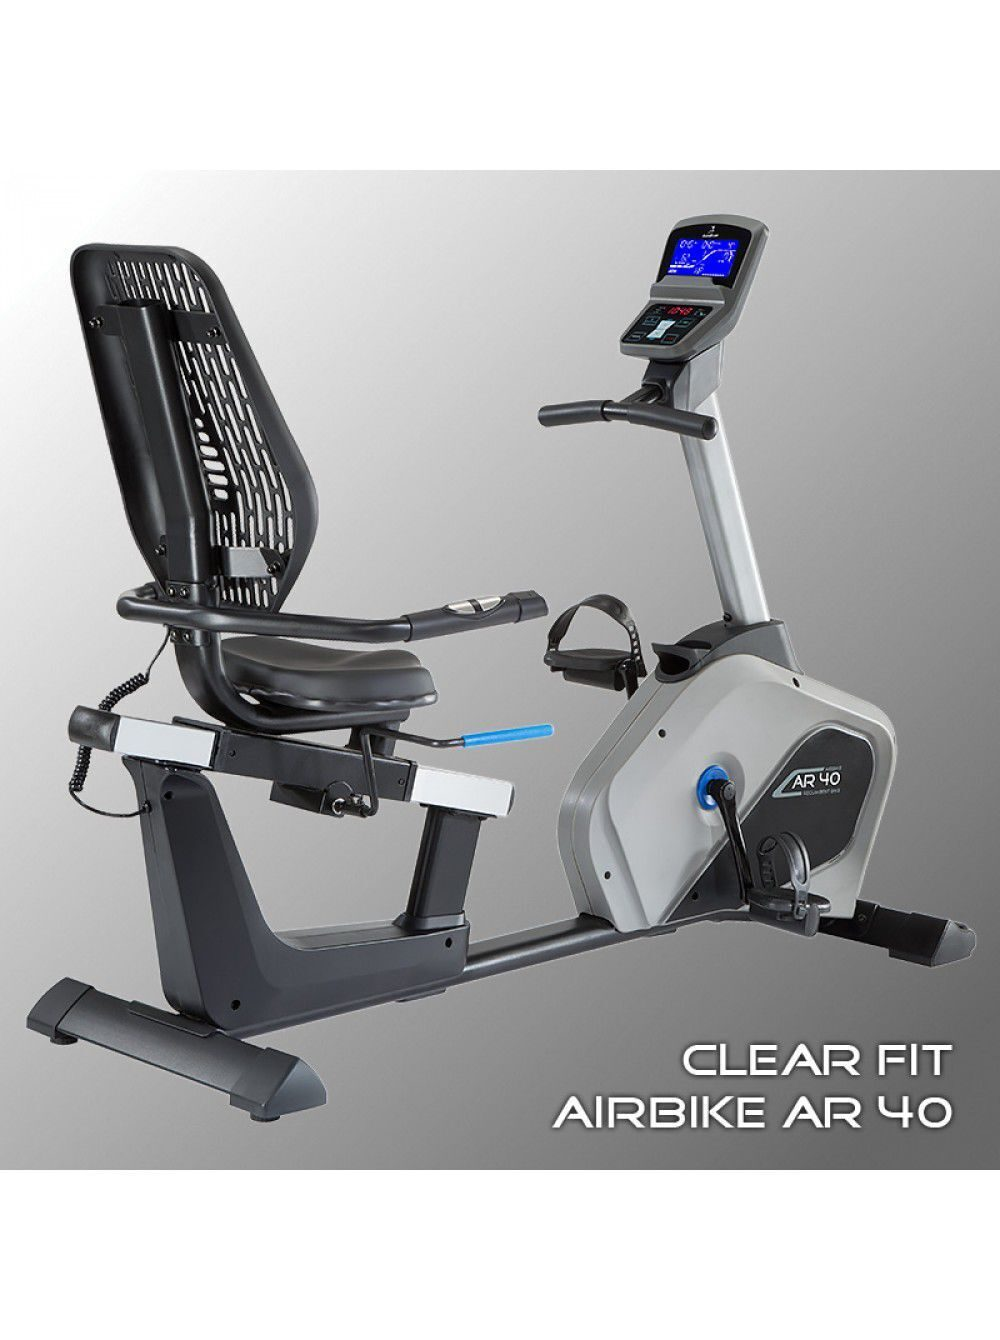 Clear Fit AirBike AR 40 Велотренажер